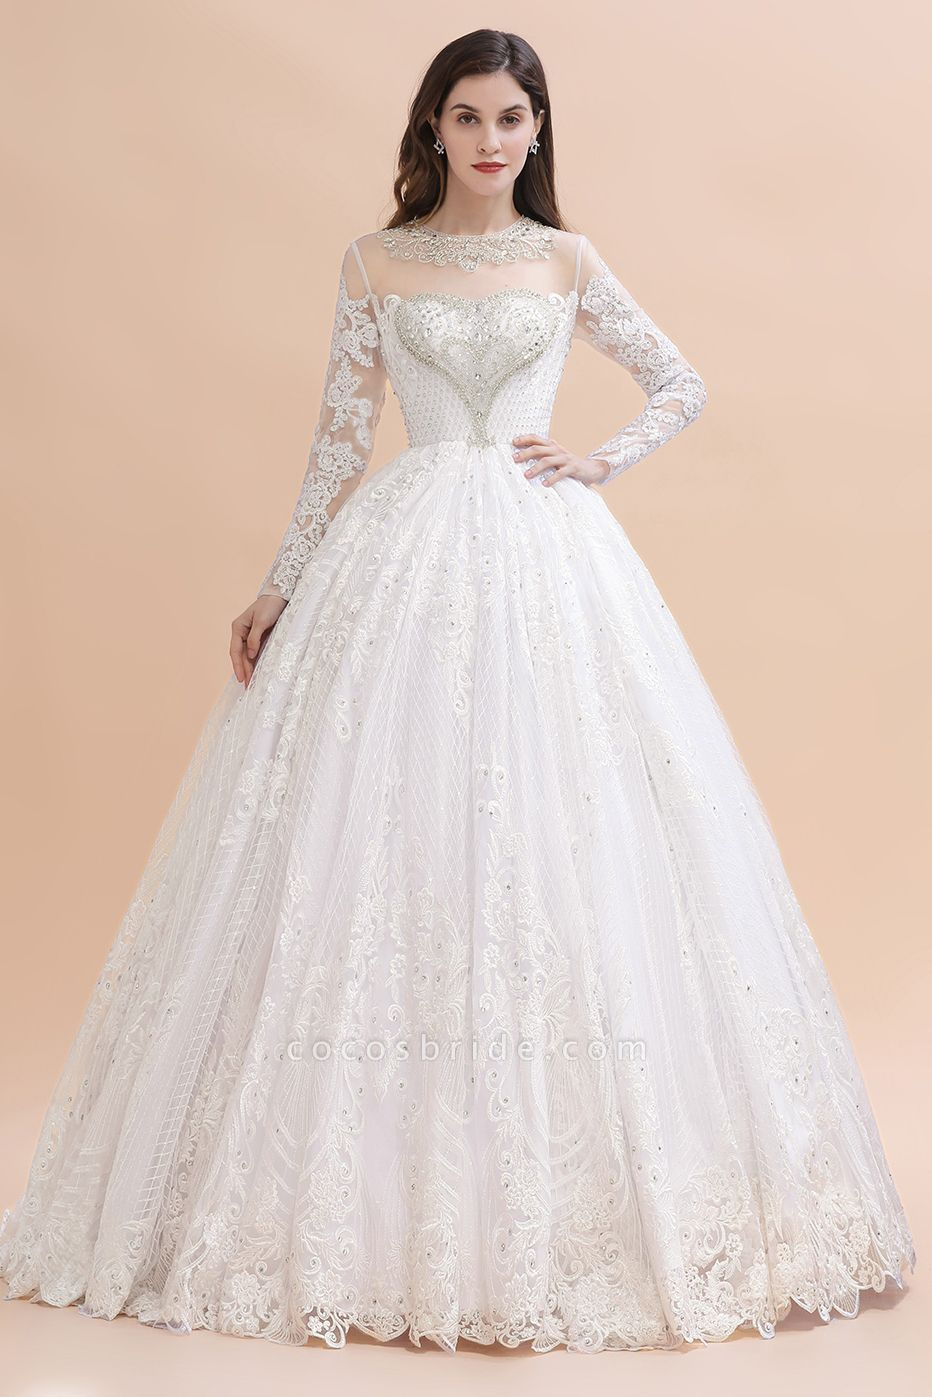 Long Sleeve Lace Crystal Beads Sheer Tulle Wedding Dress